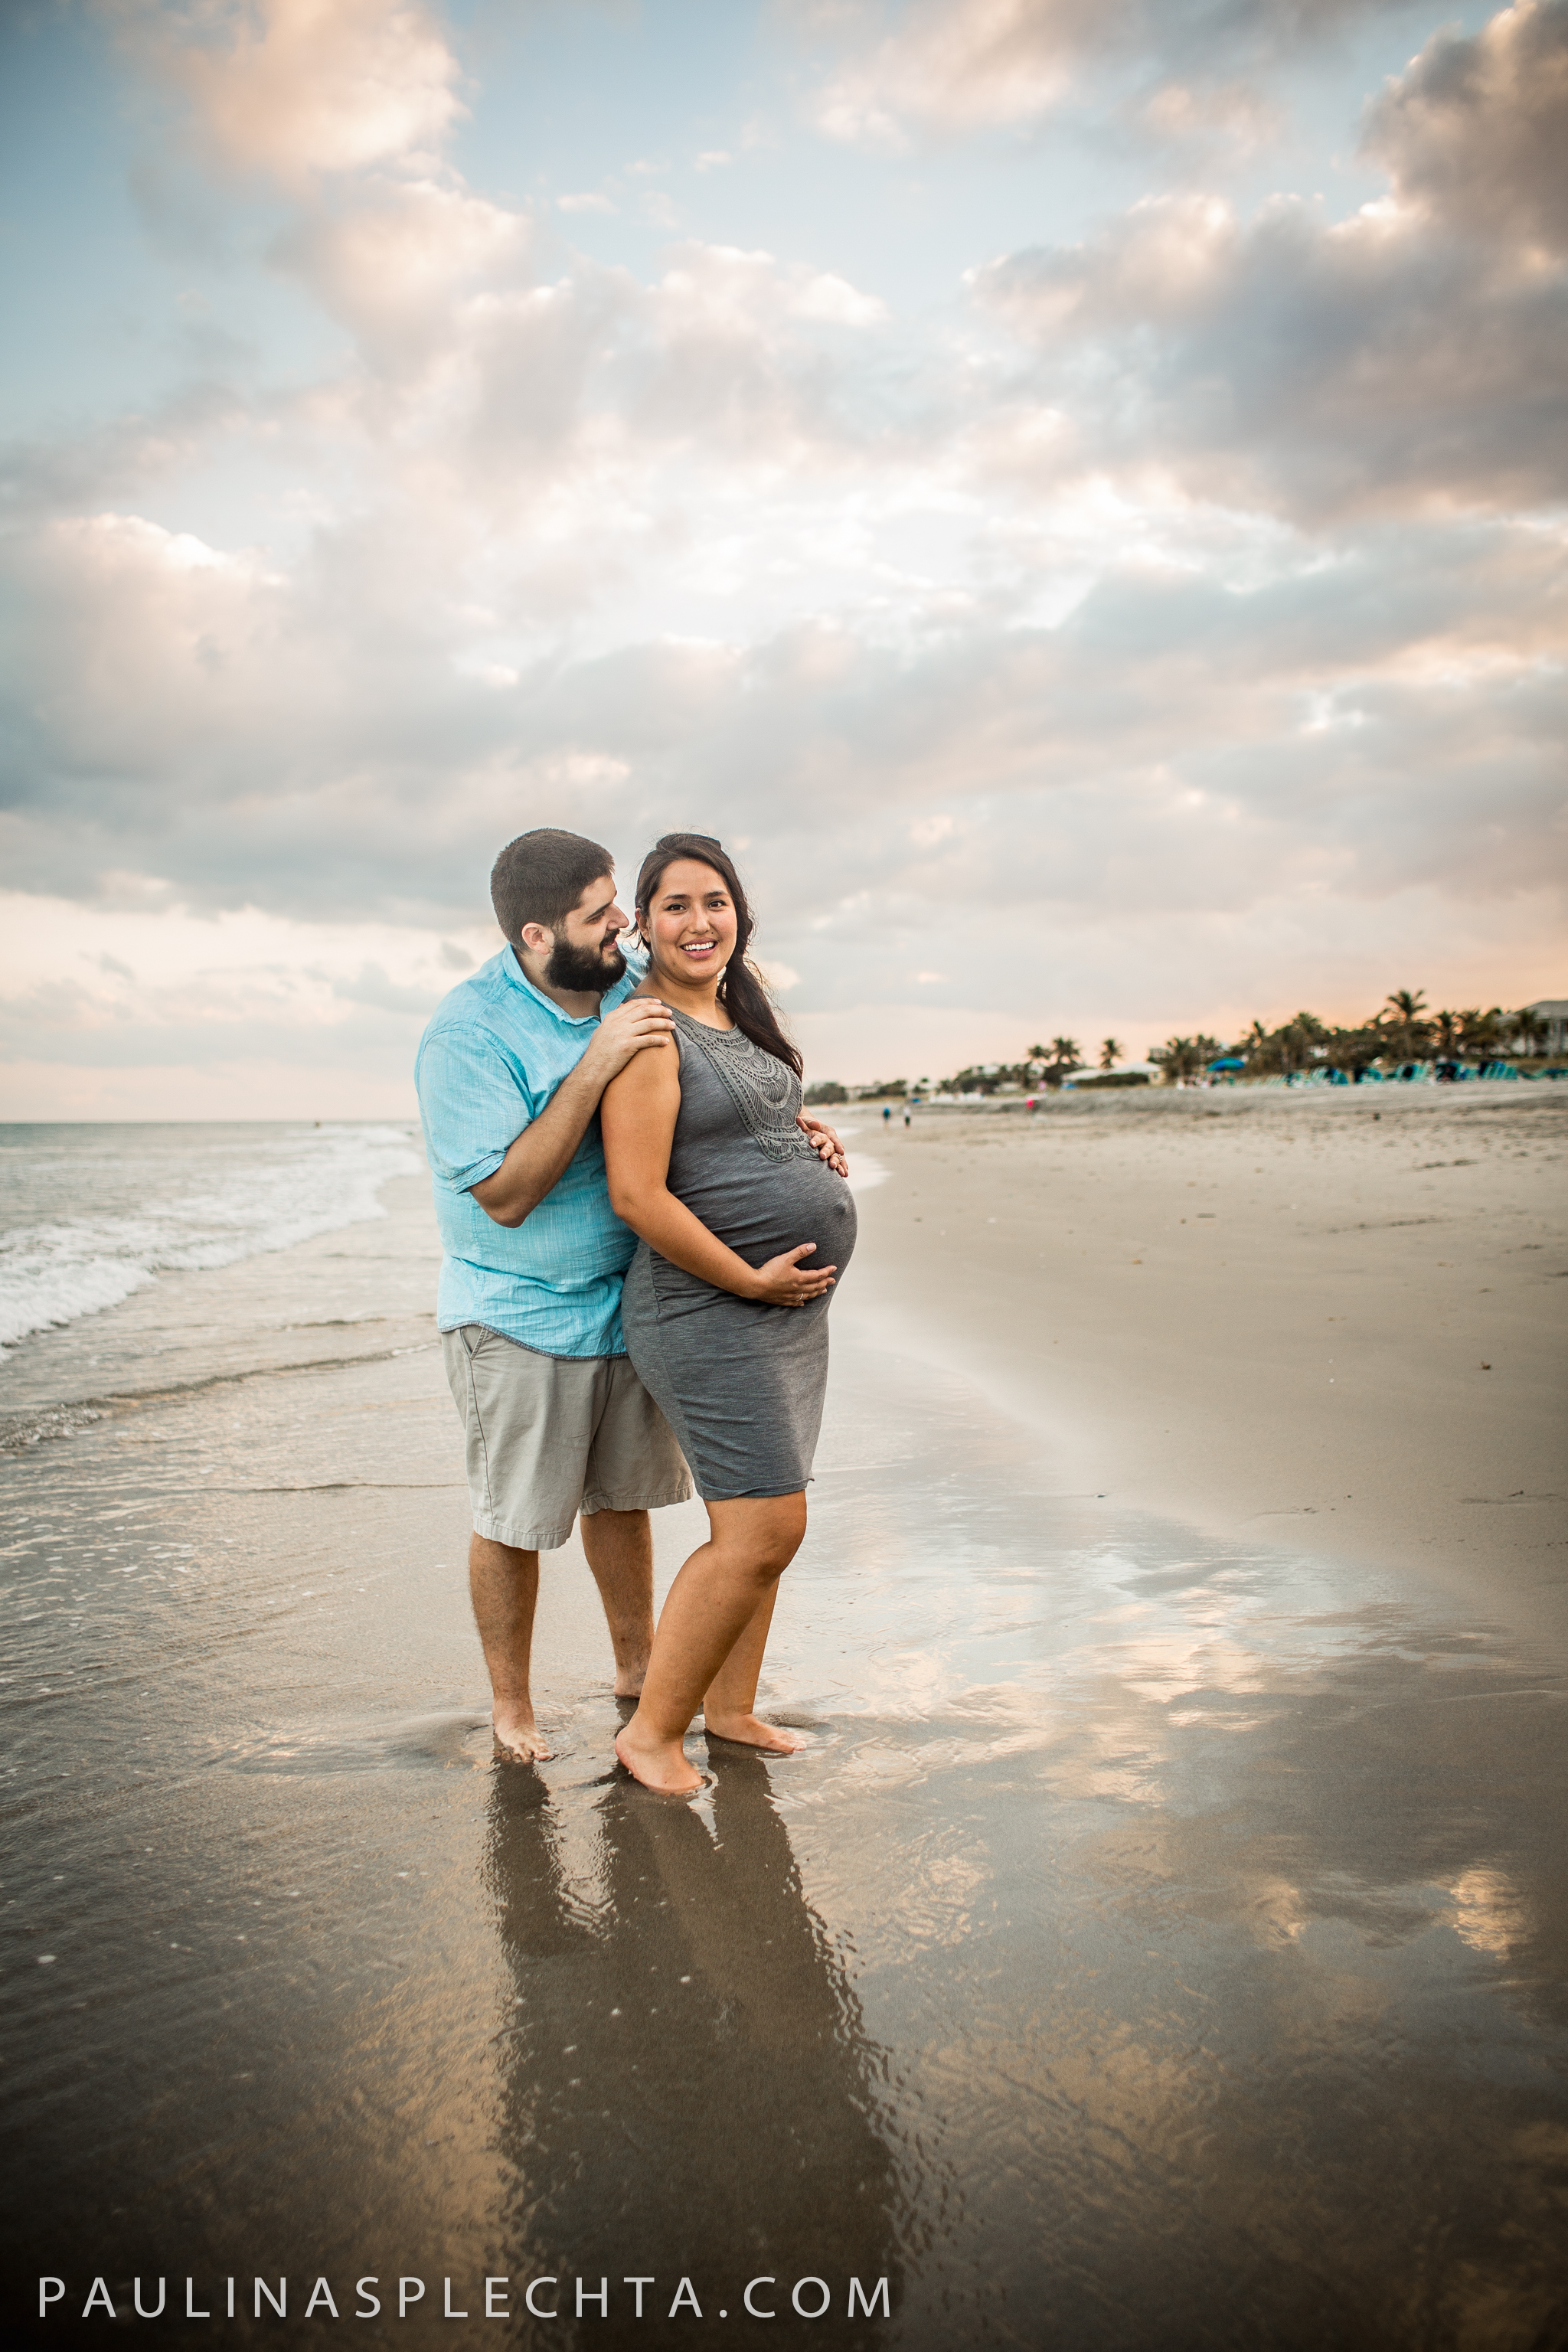 Maternity Newborn and Baby Photographer in Boca Raton Fort Lauderdale South Florida-16.jpg